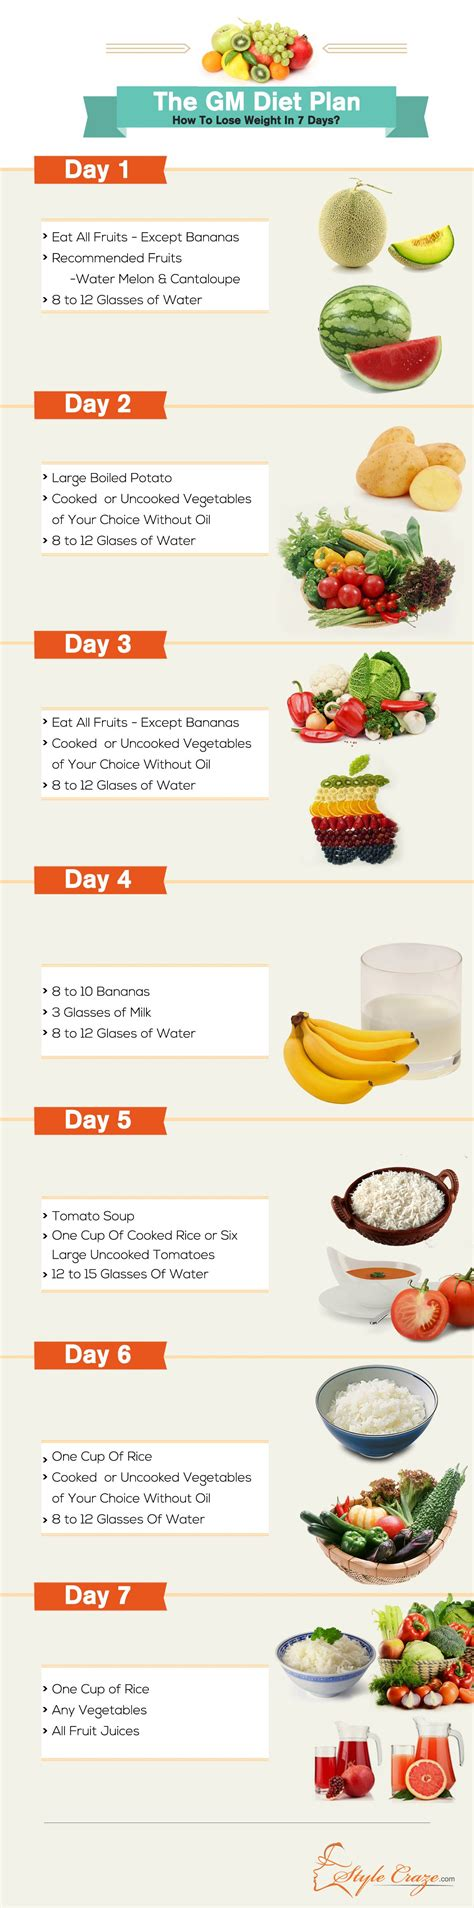 Gm Detox Diet Plan by The Gm Diet Plan How To Lose Weight In Just 7 Days Gm